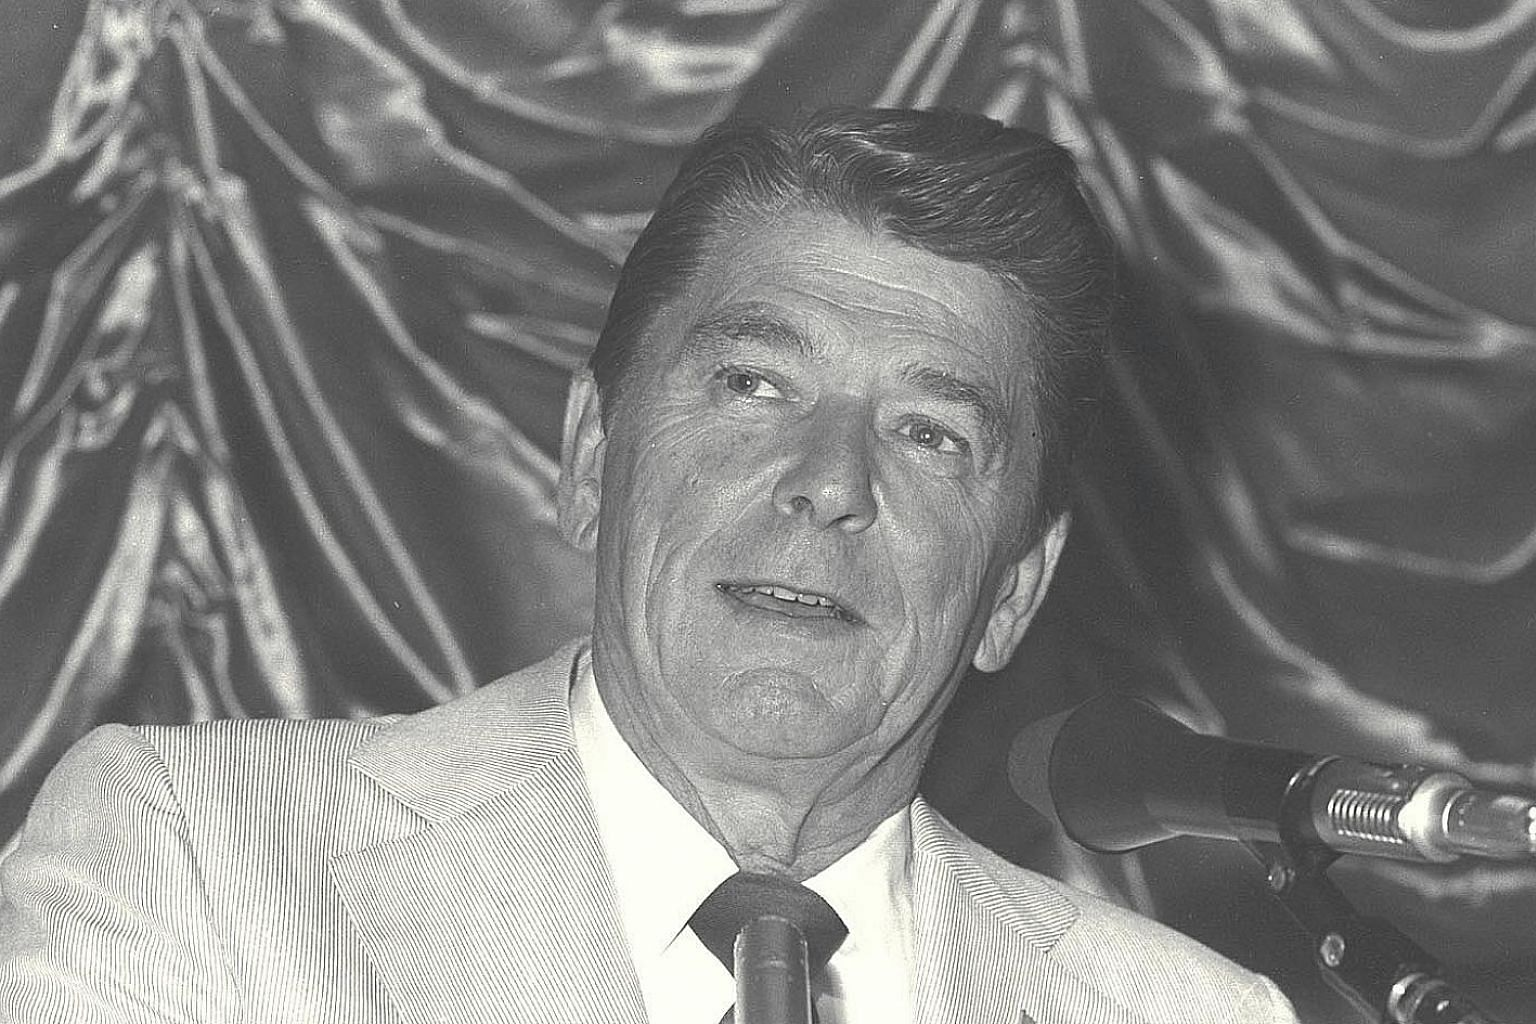 Mr Ronald Reagan's ideological offensive of the 1980s is still relevant, says the writer.